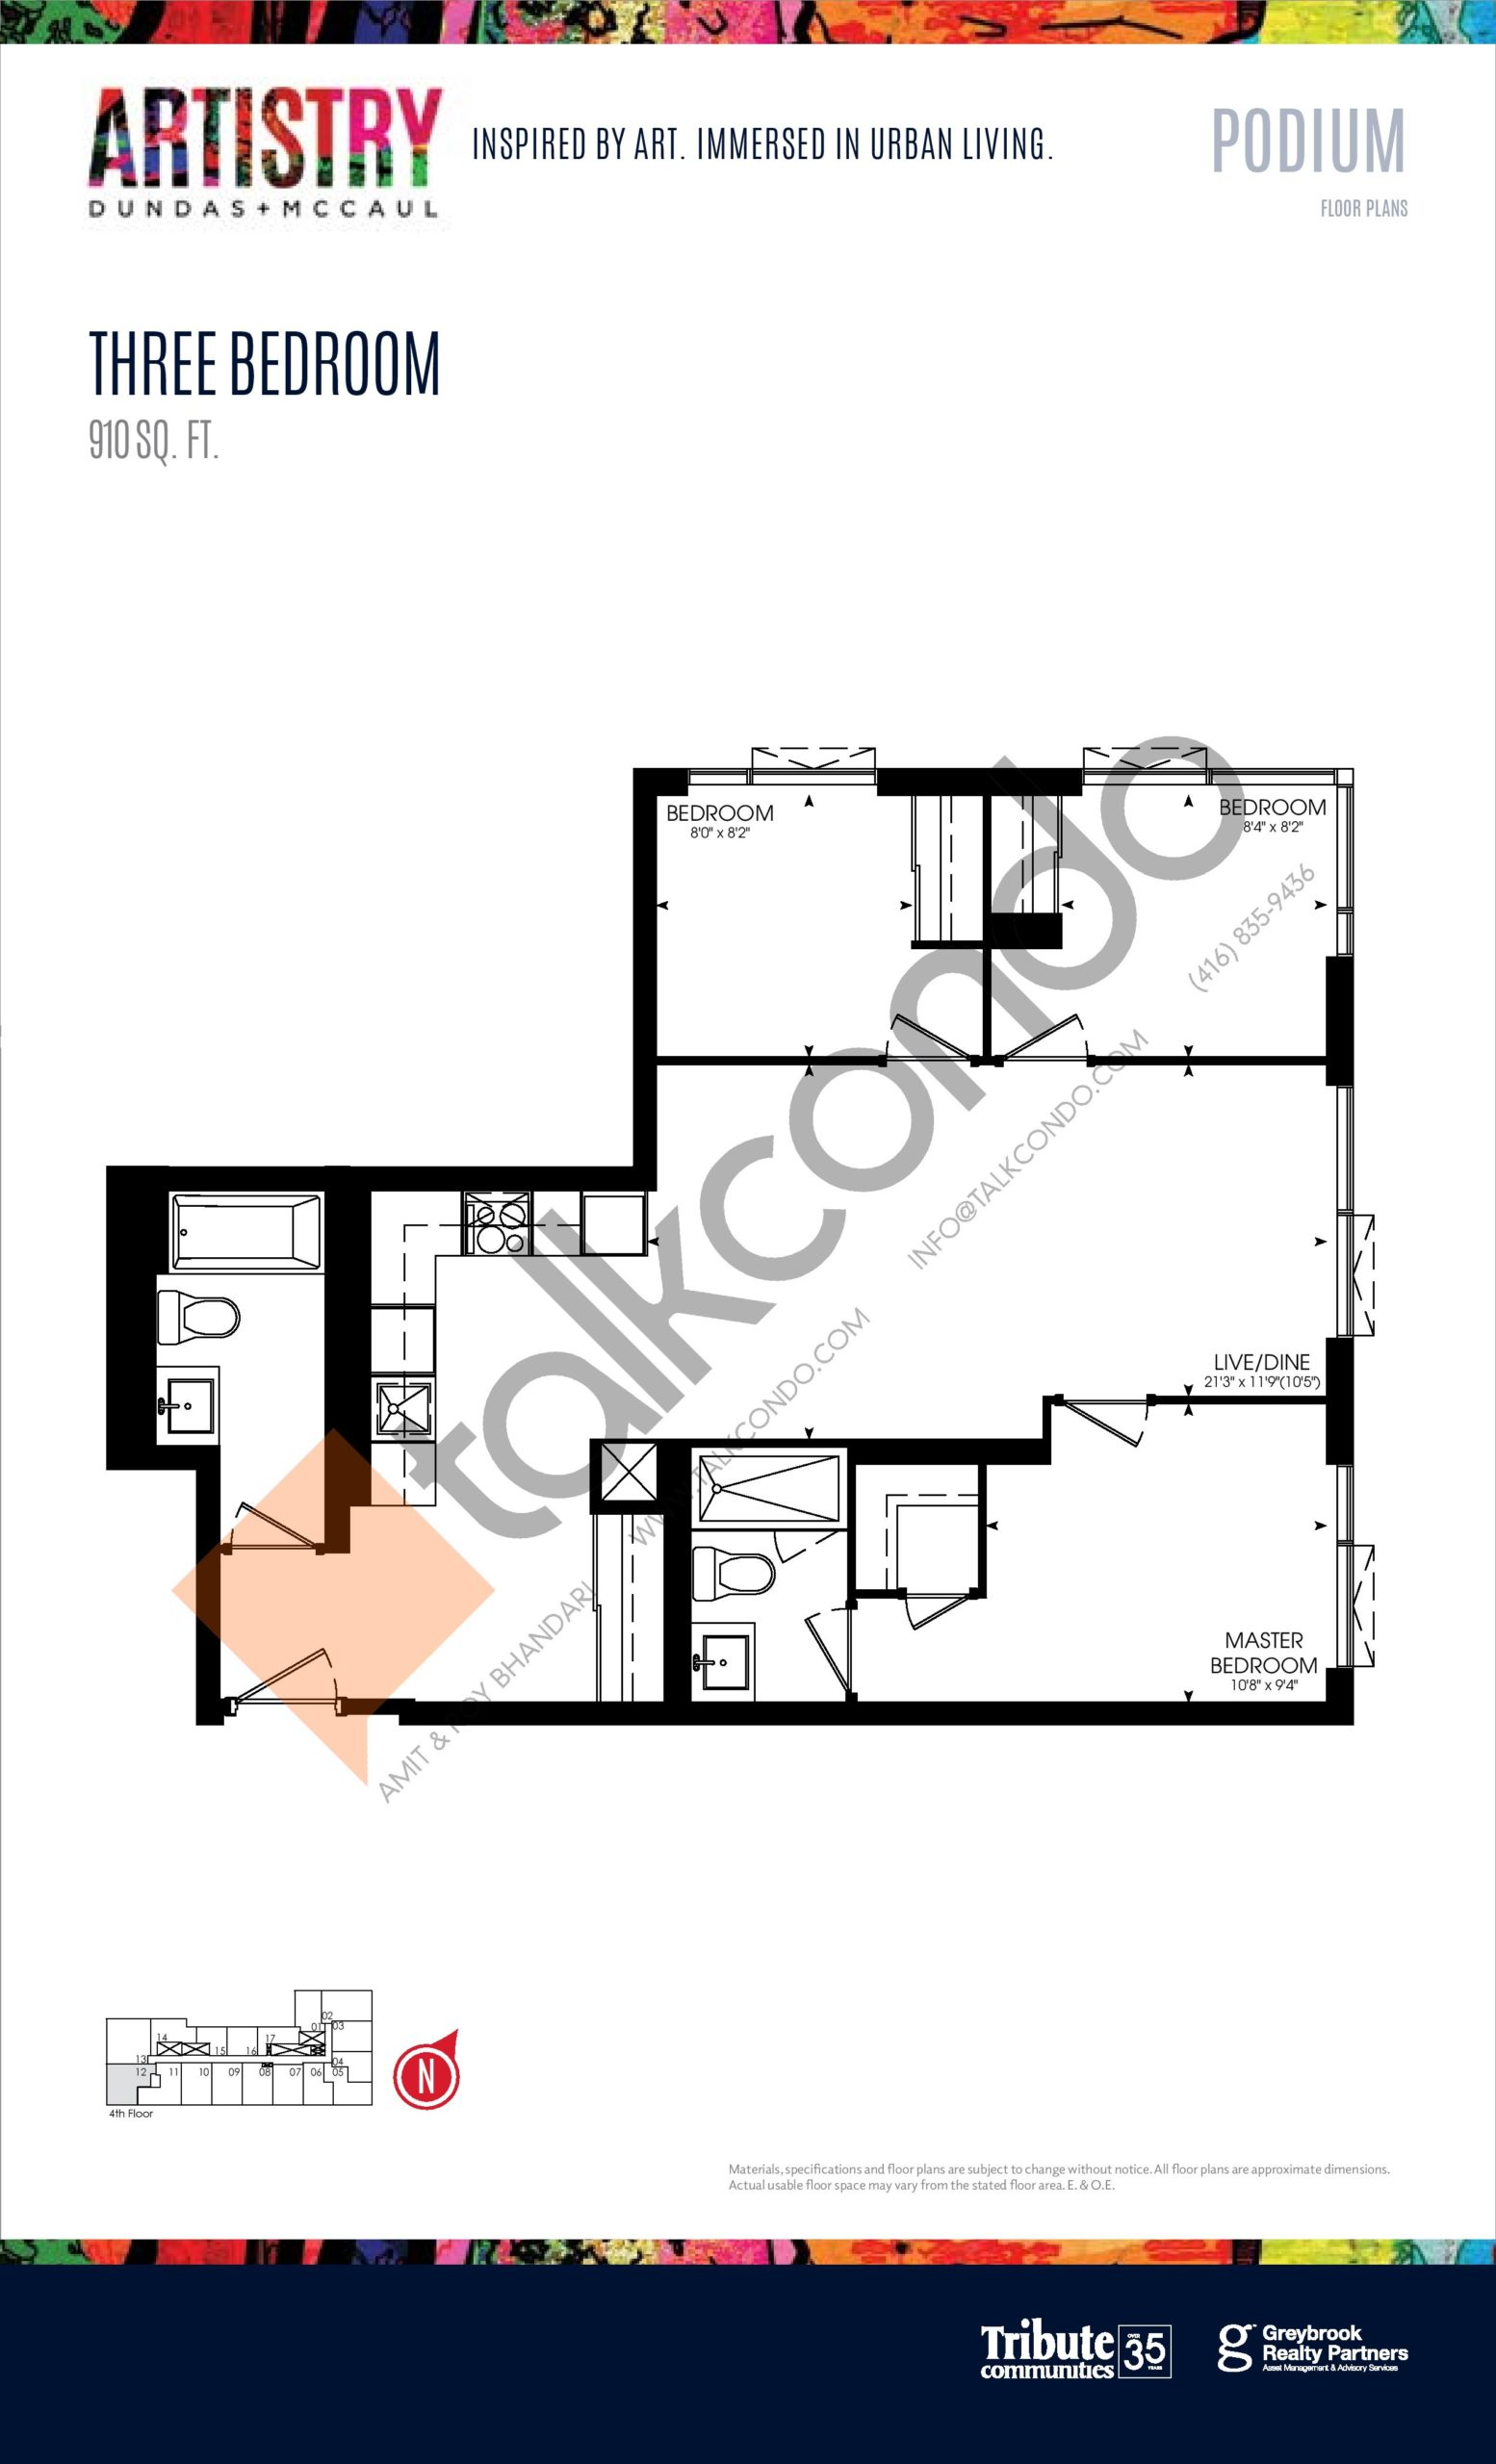 910 sq. ft. - Podium Floor Plan at Artistry Condos - 910 sq.ft